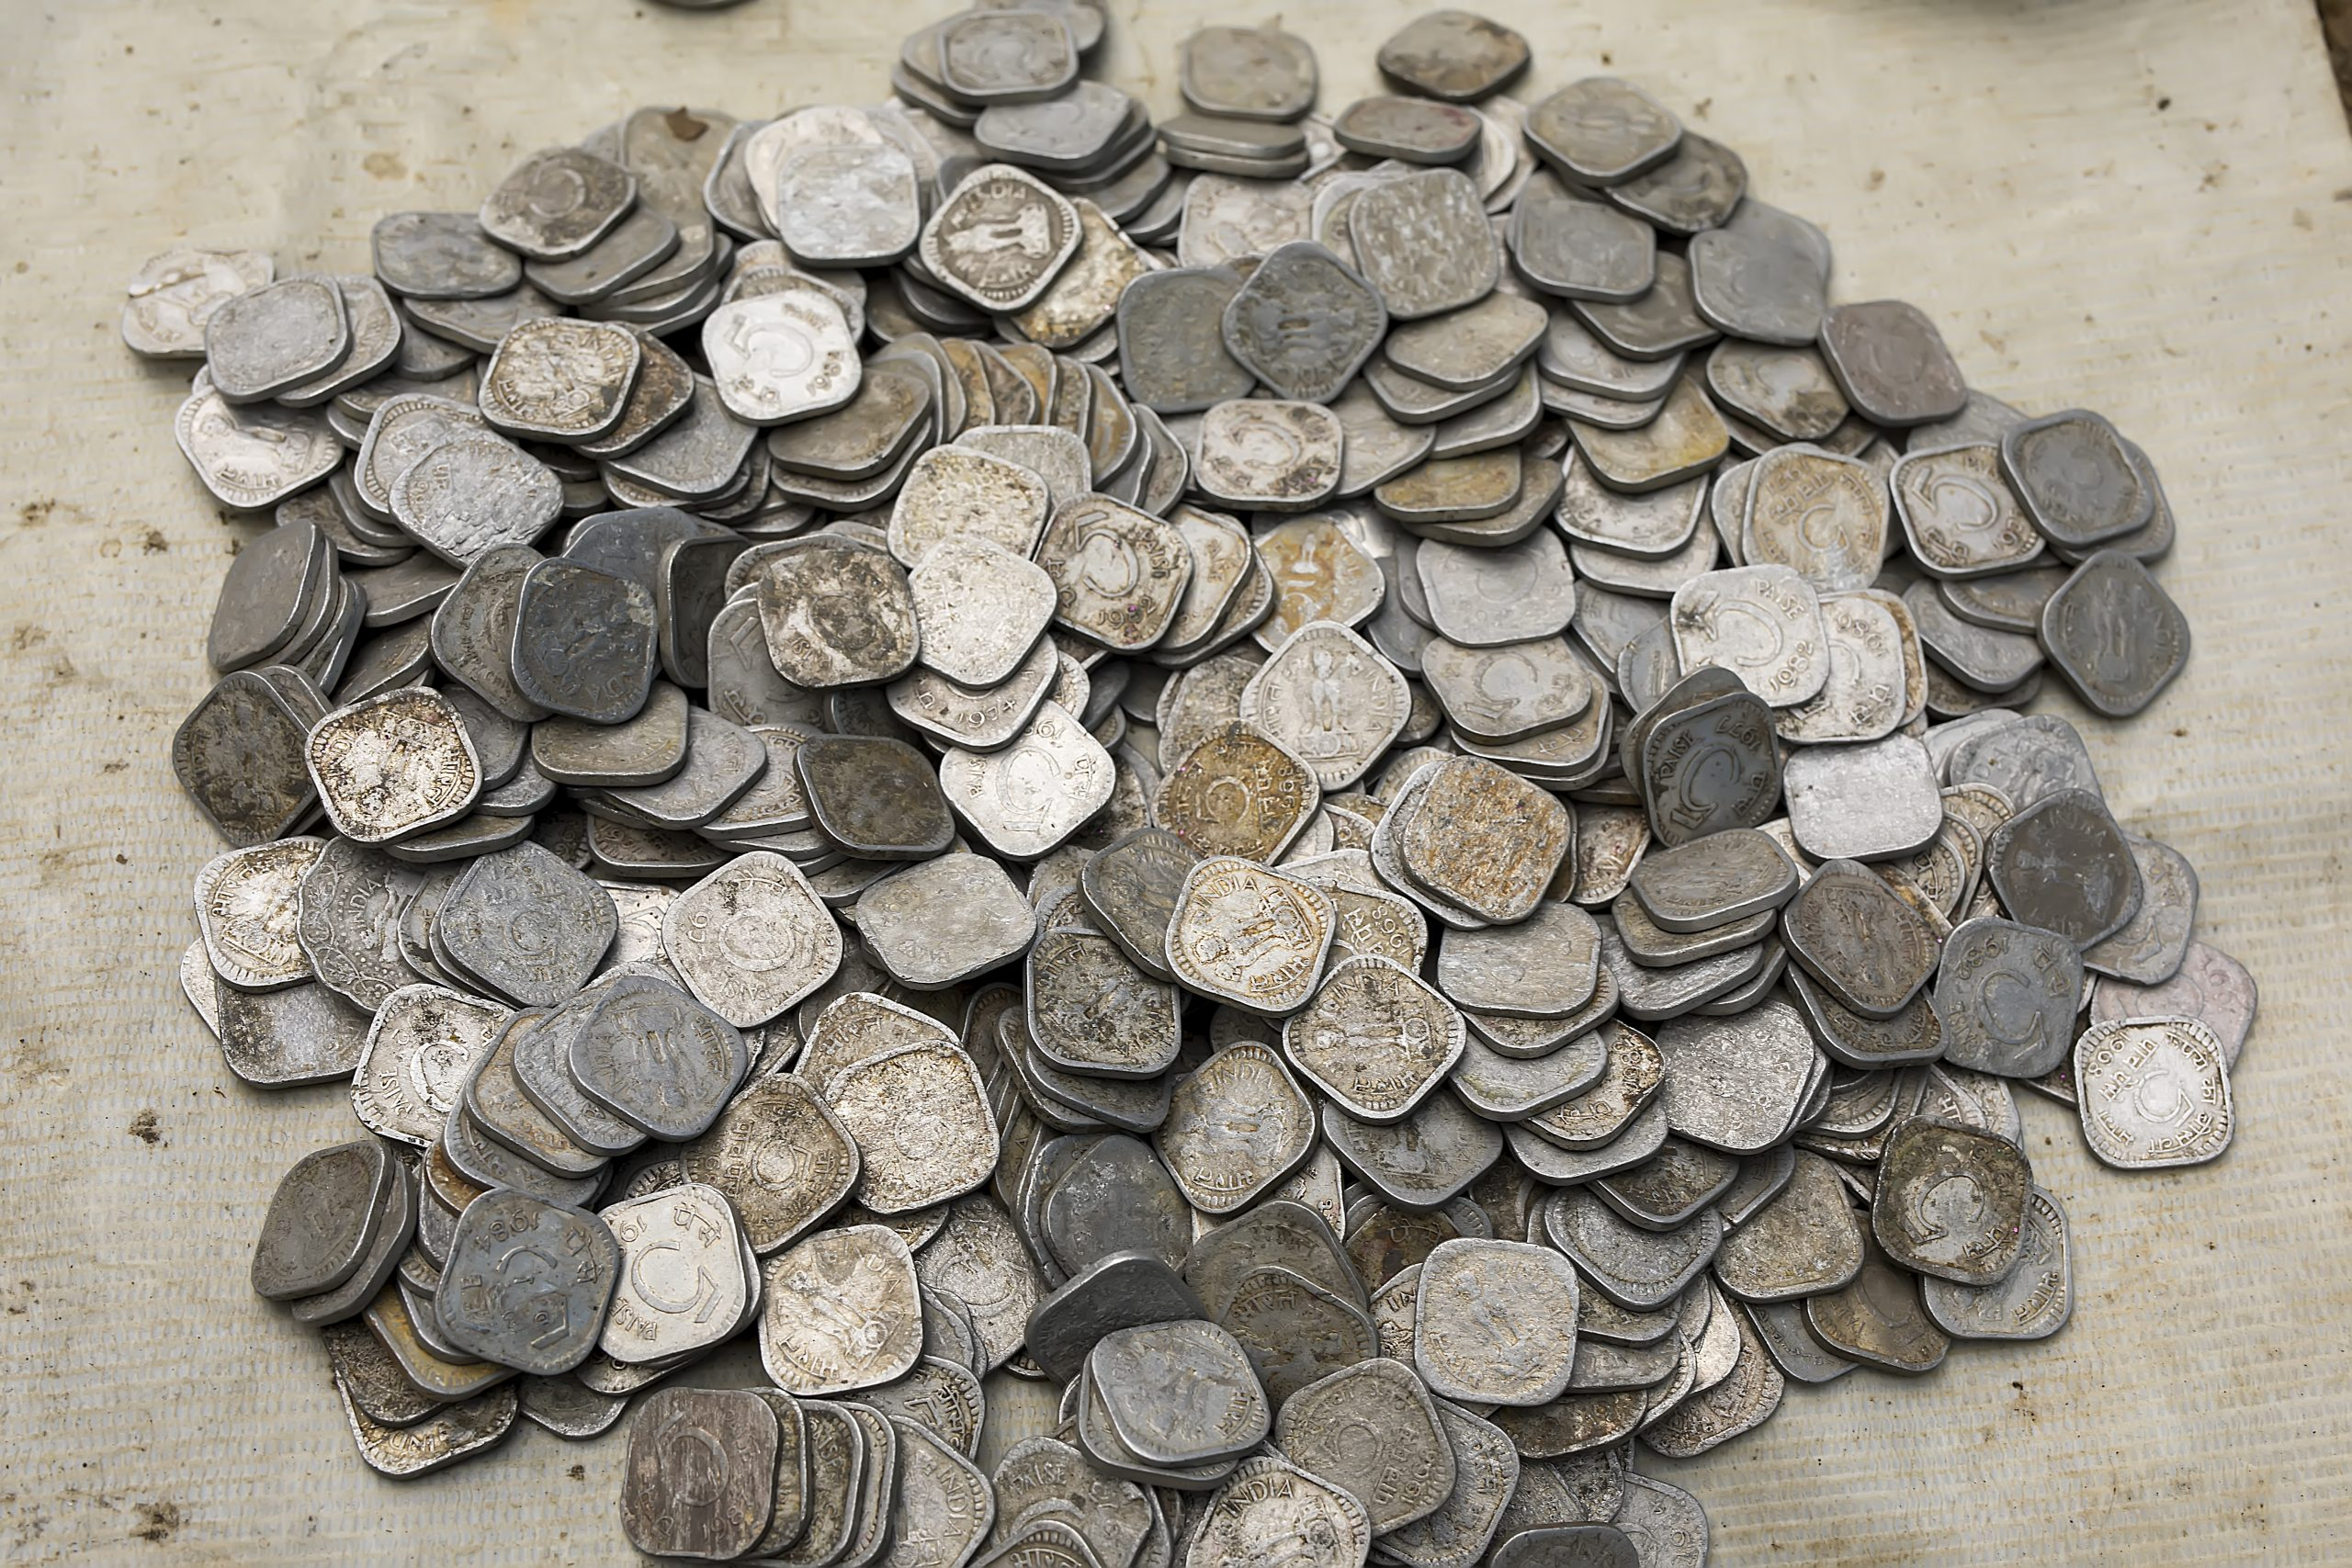 Indian Old Coin, Currency